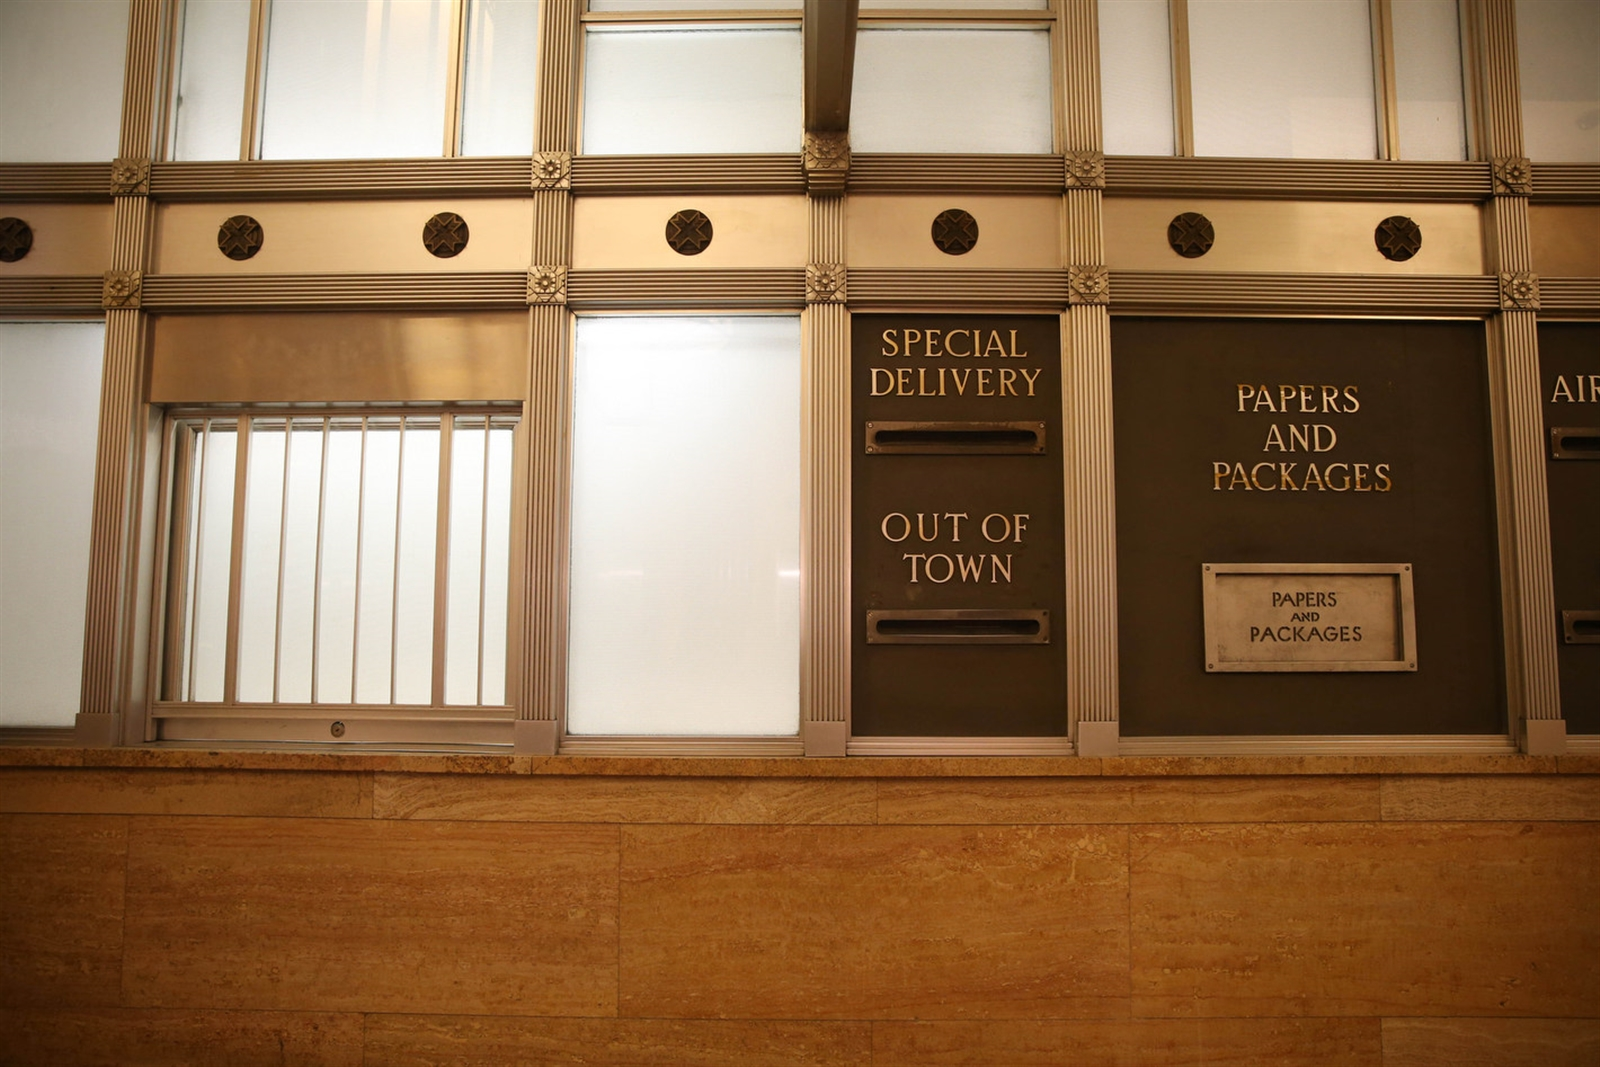 Mail slots at the former post office in the Dillon Courthouse. (Sharon Cantillon/Buffalo News)